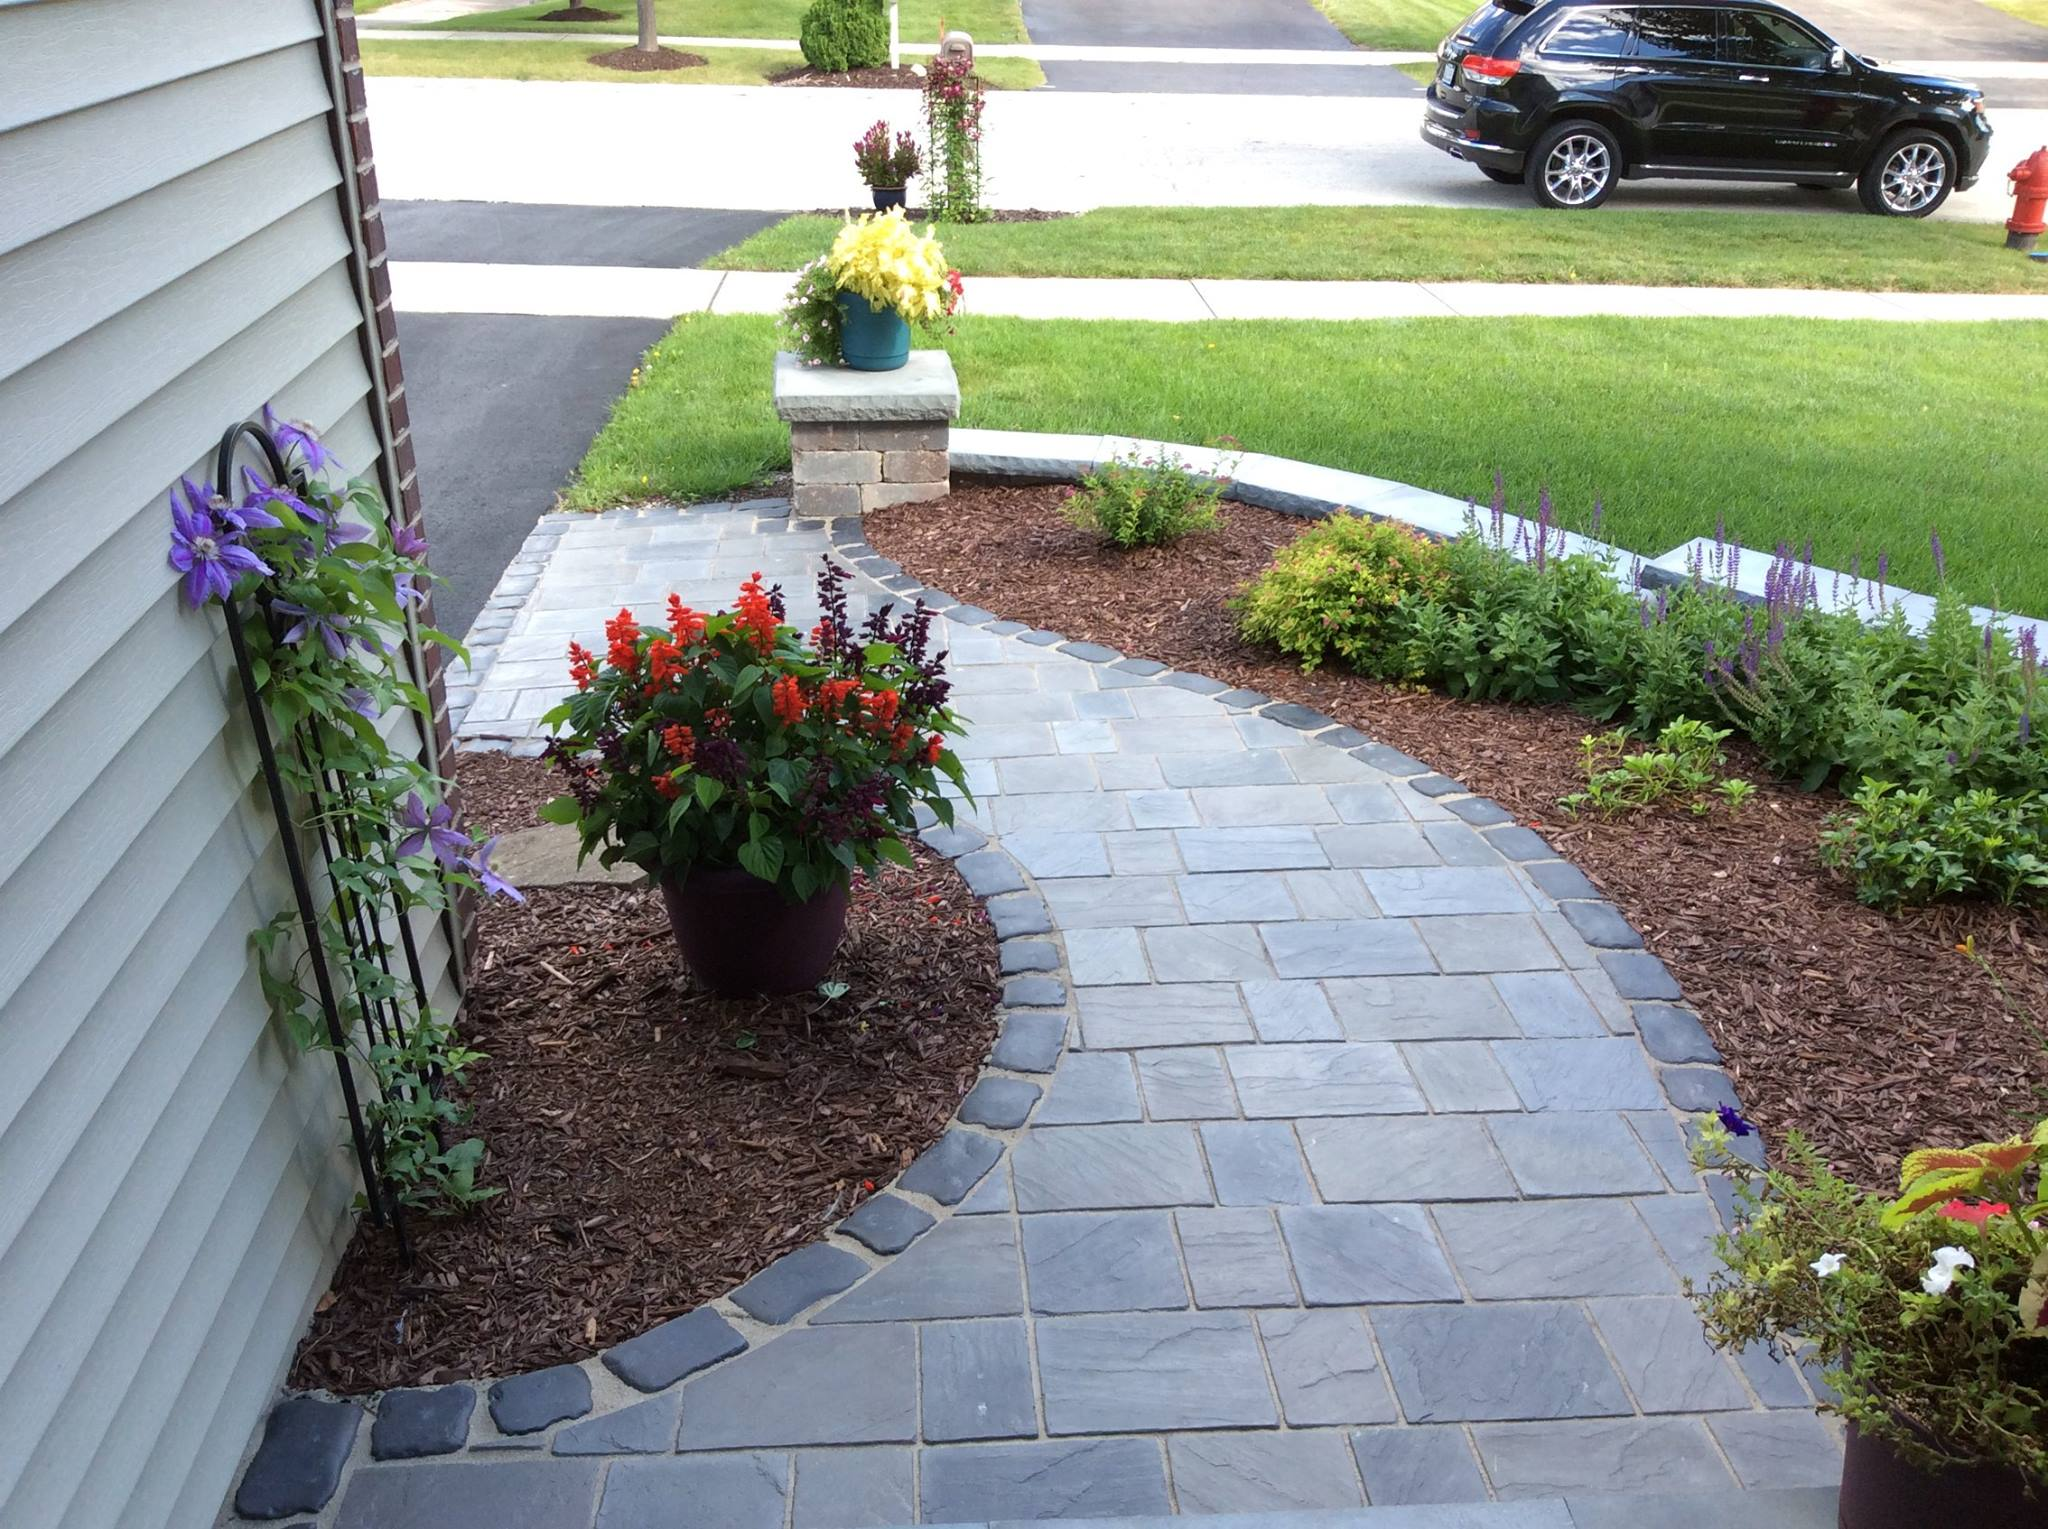 Oswego, Illinois brick paving, including brick patio and driveway